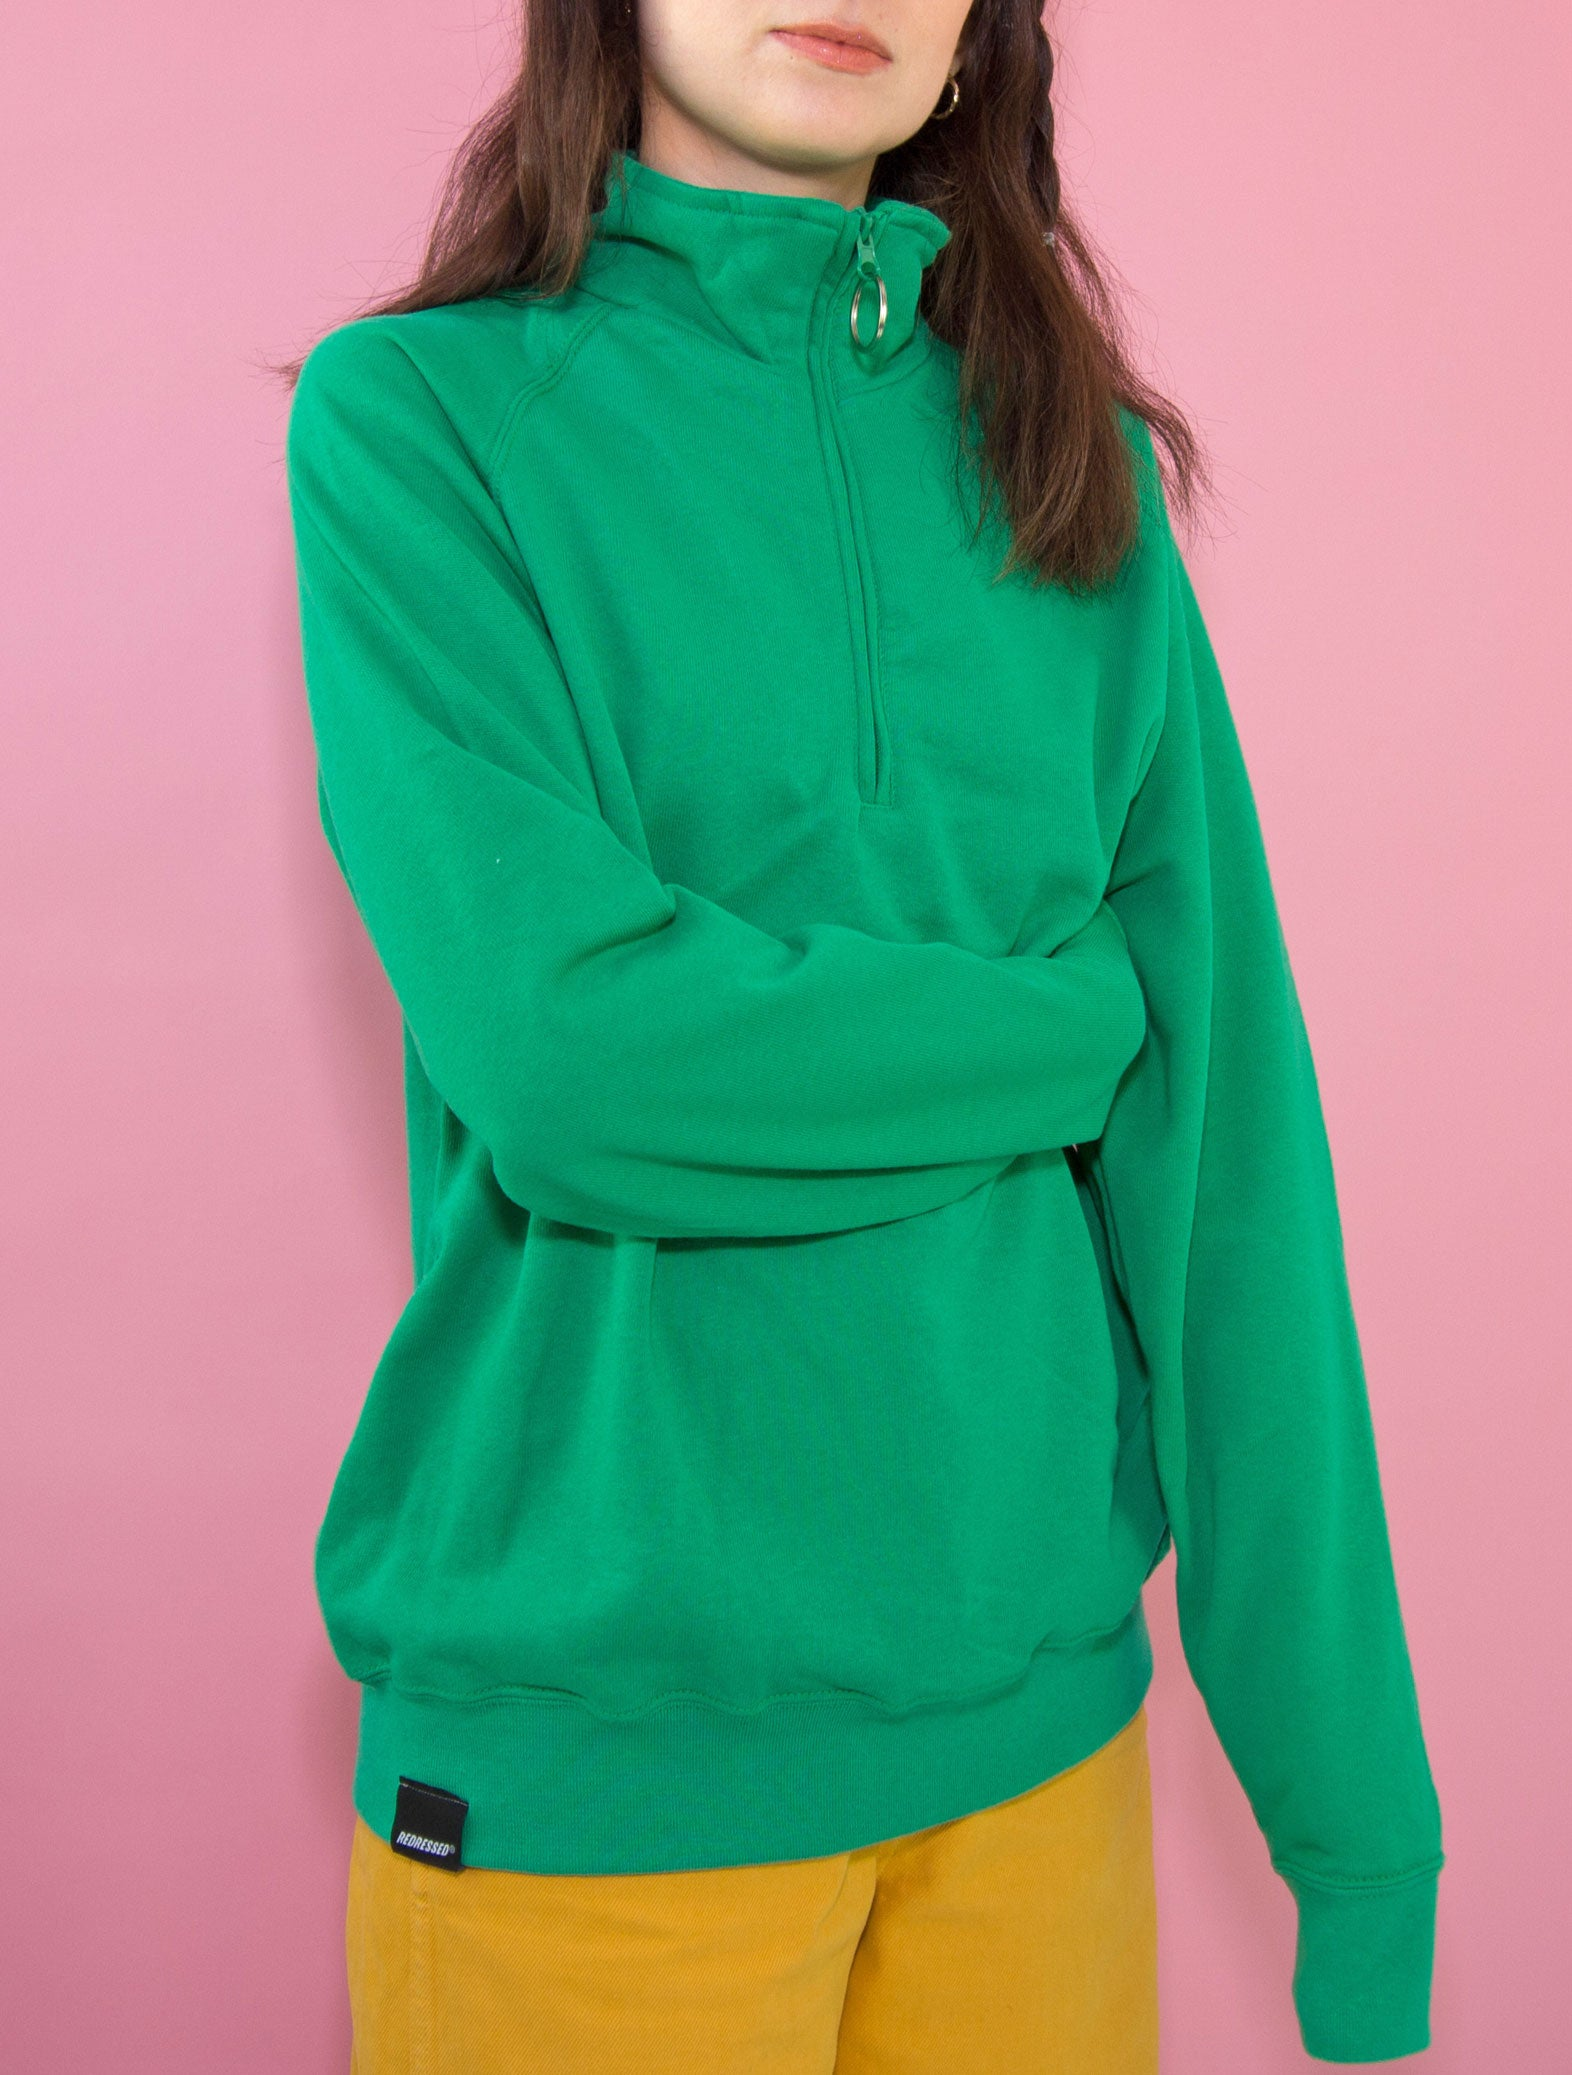 Green O-Ring Zip-up Sweatshirt